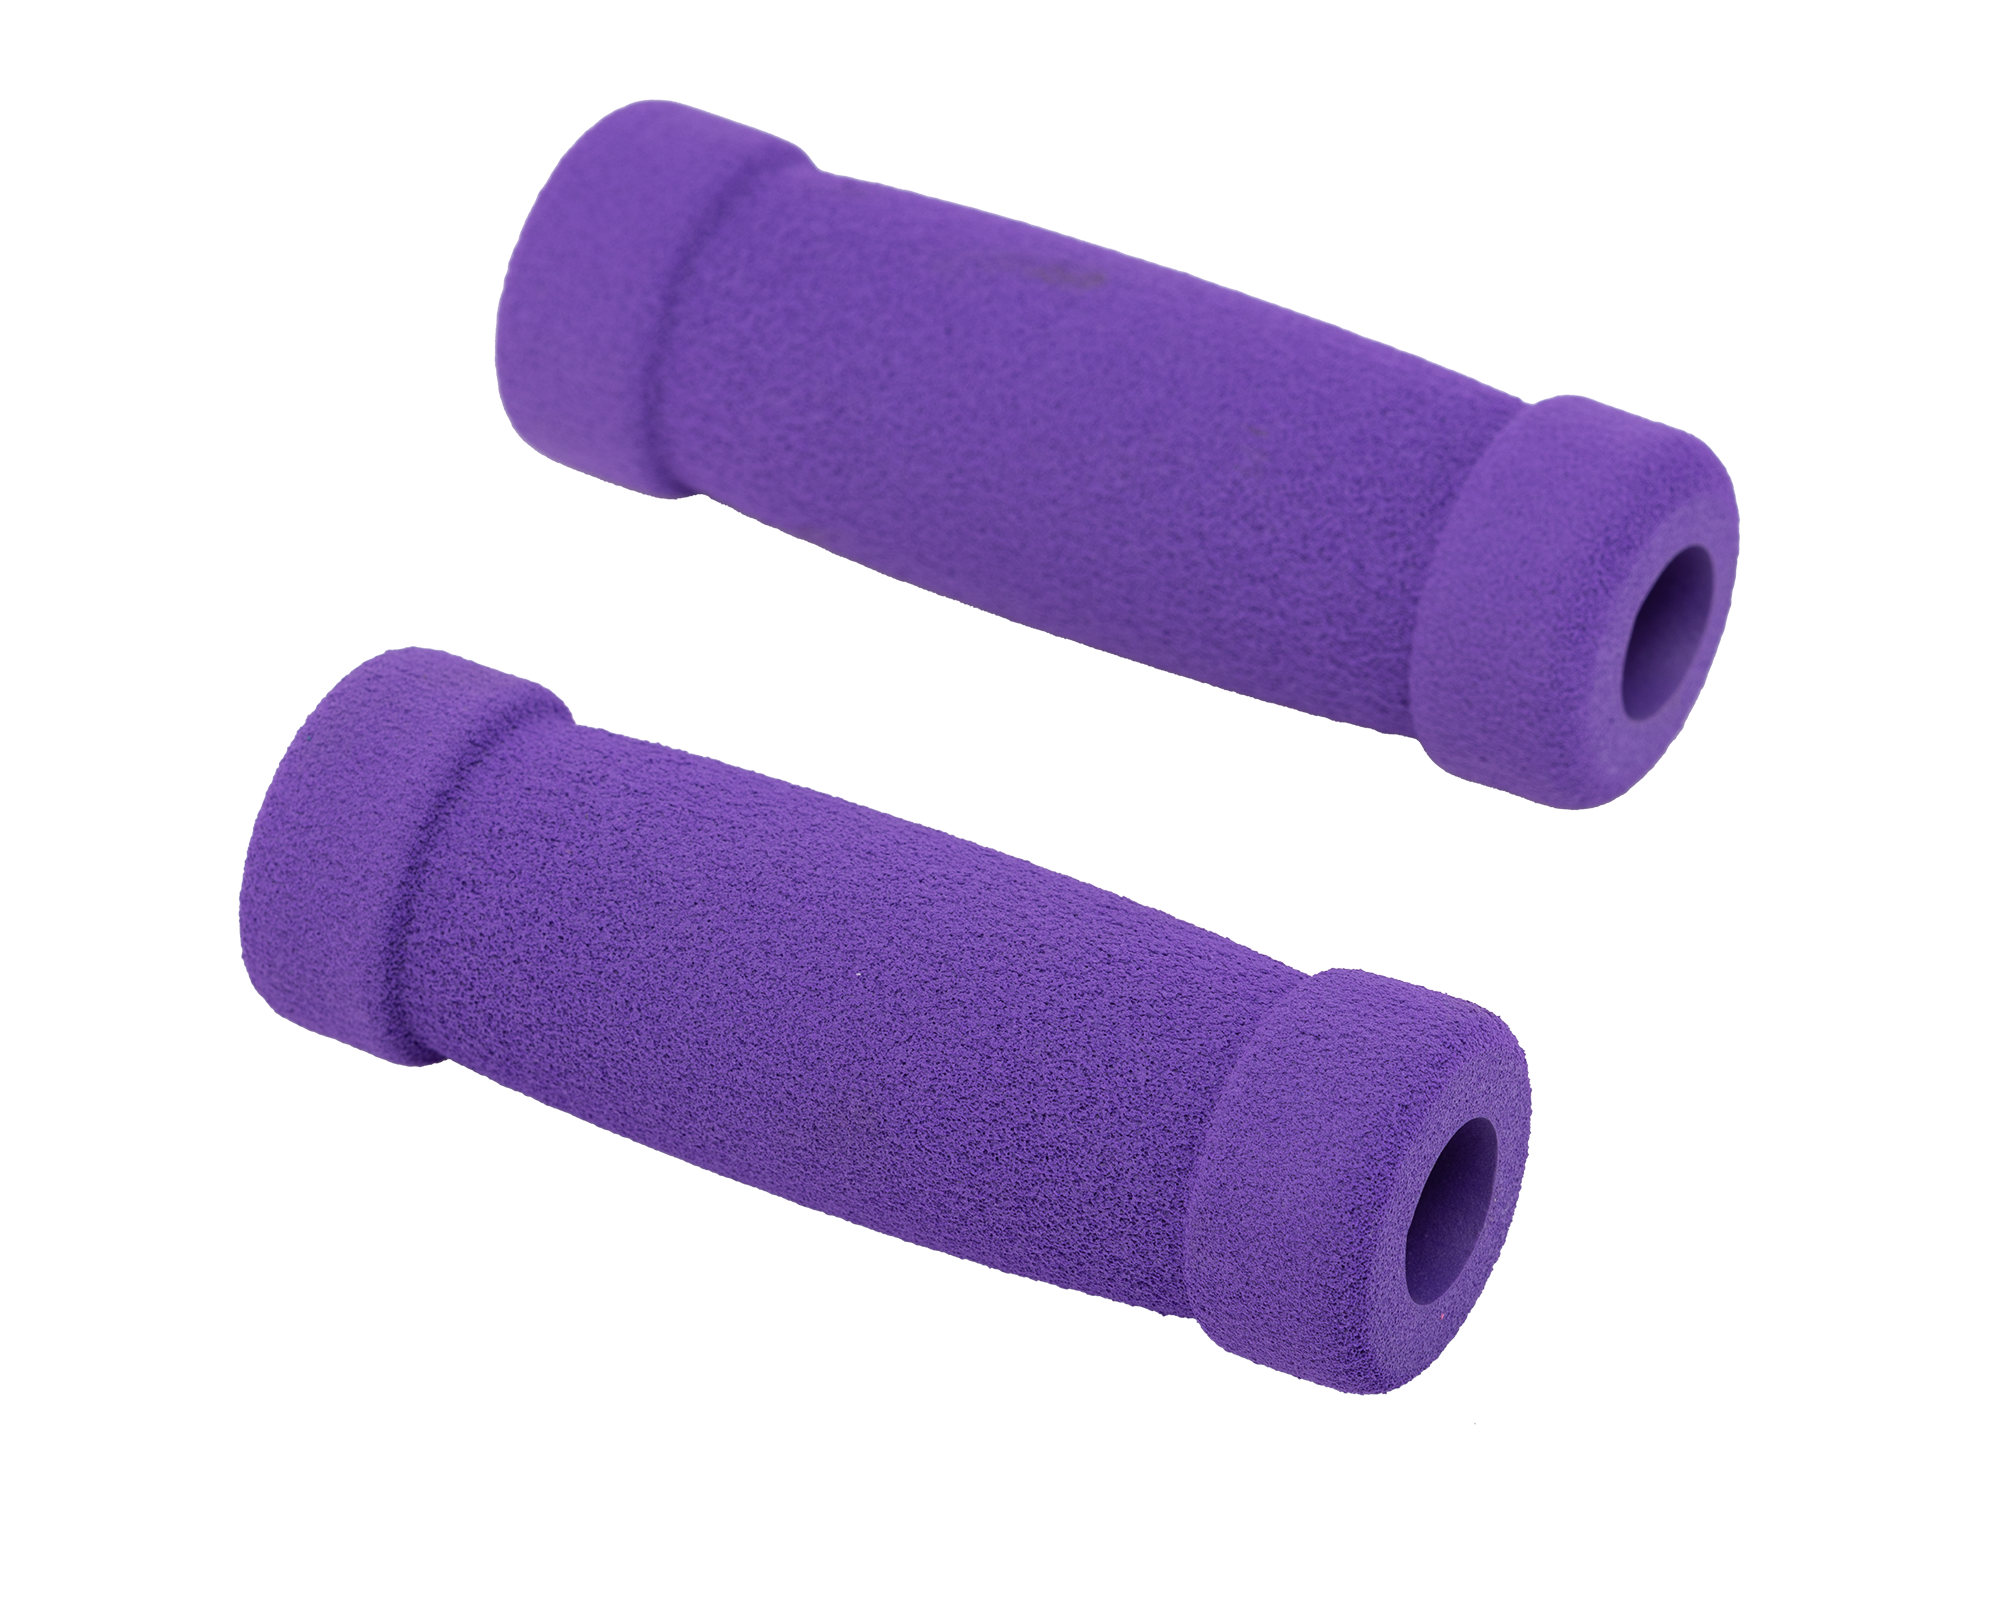 Razor Foam Handlebar Grip - Purple, Set of 2 - 134320-PU